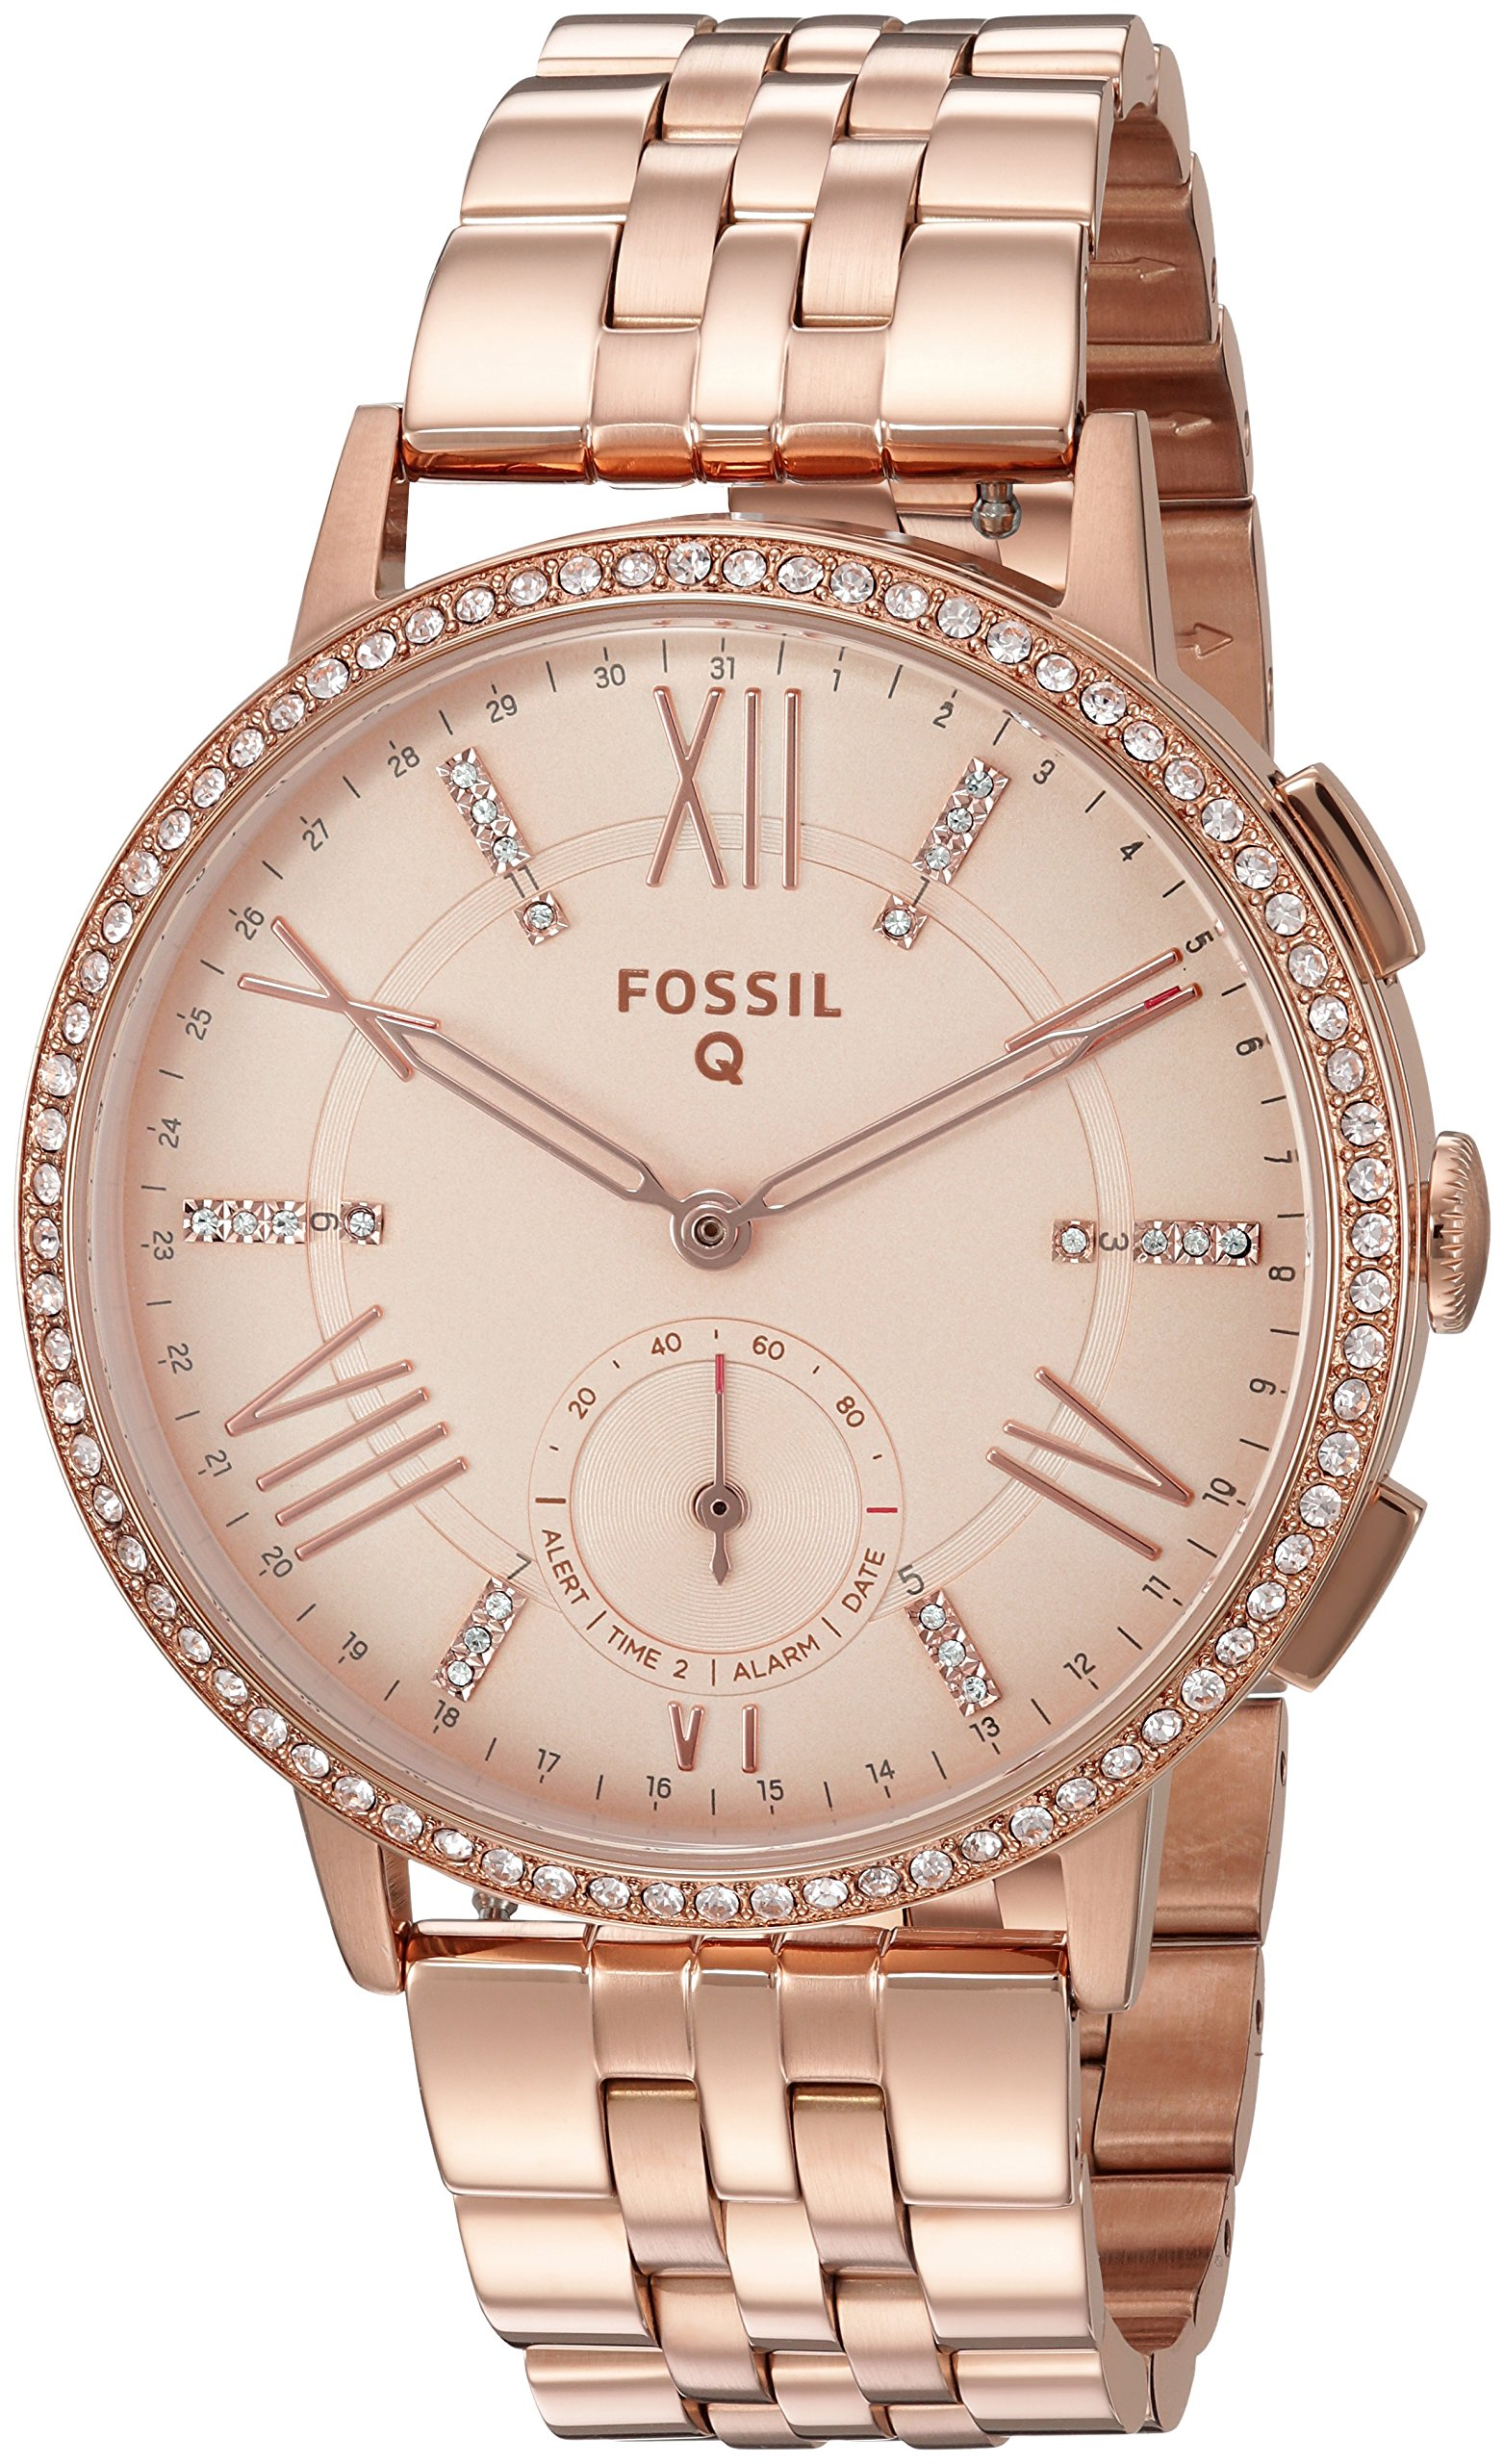 Fossil 'Q GAZER' Processor Stainless Steel Smart Watch, Color:Rose Gold-Toned (Model: FTW1106)